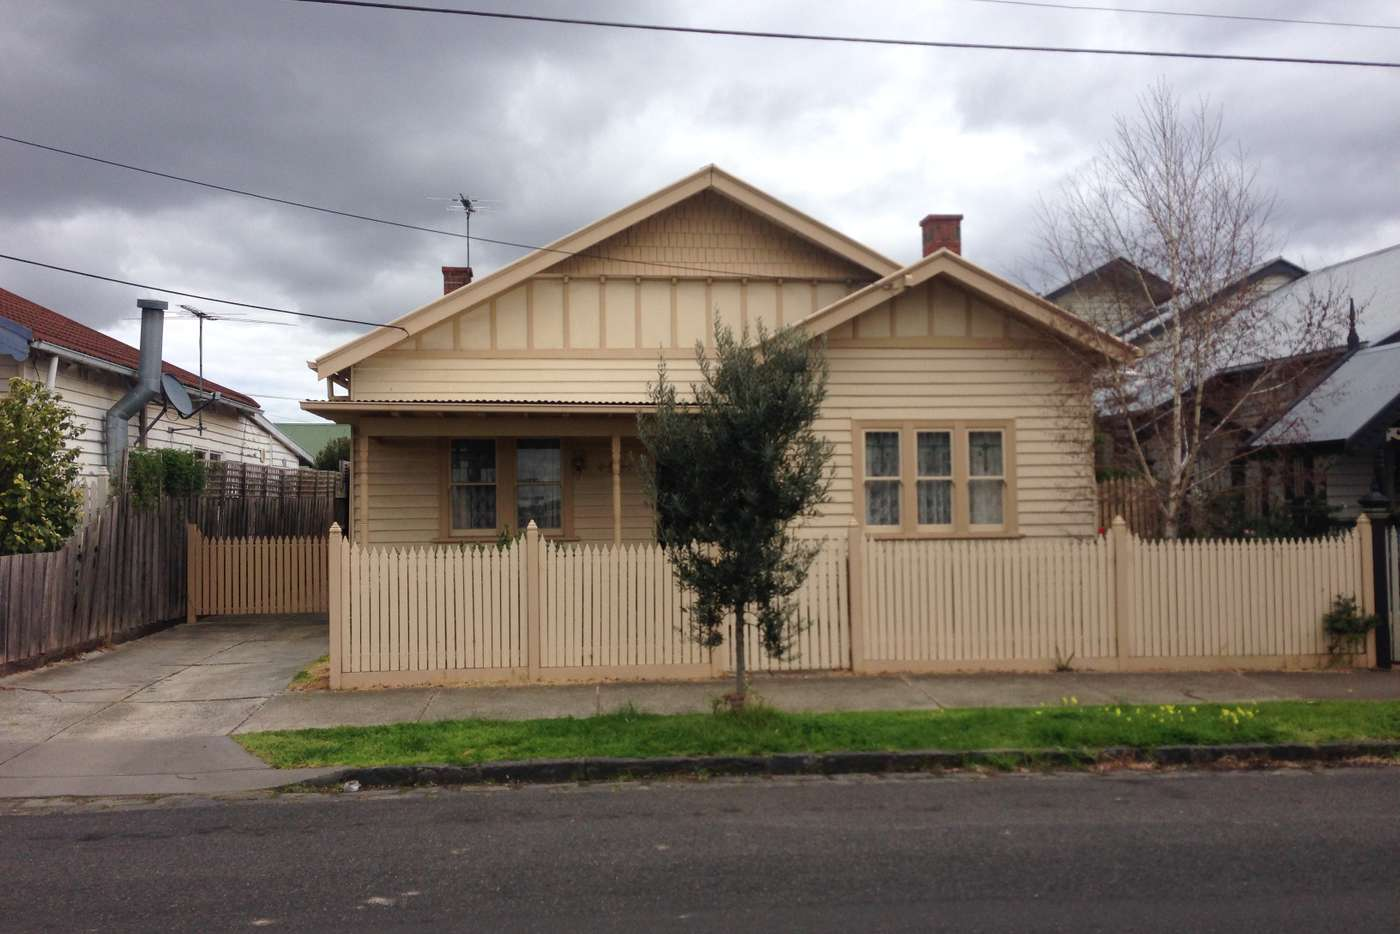 Main view of Homely house listing, 16 View Street, West Footscray VIC 3012